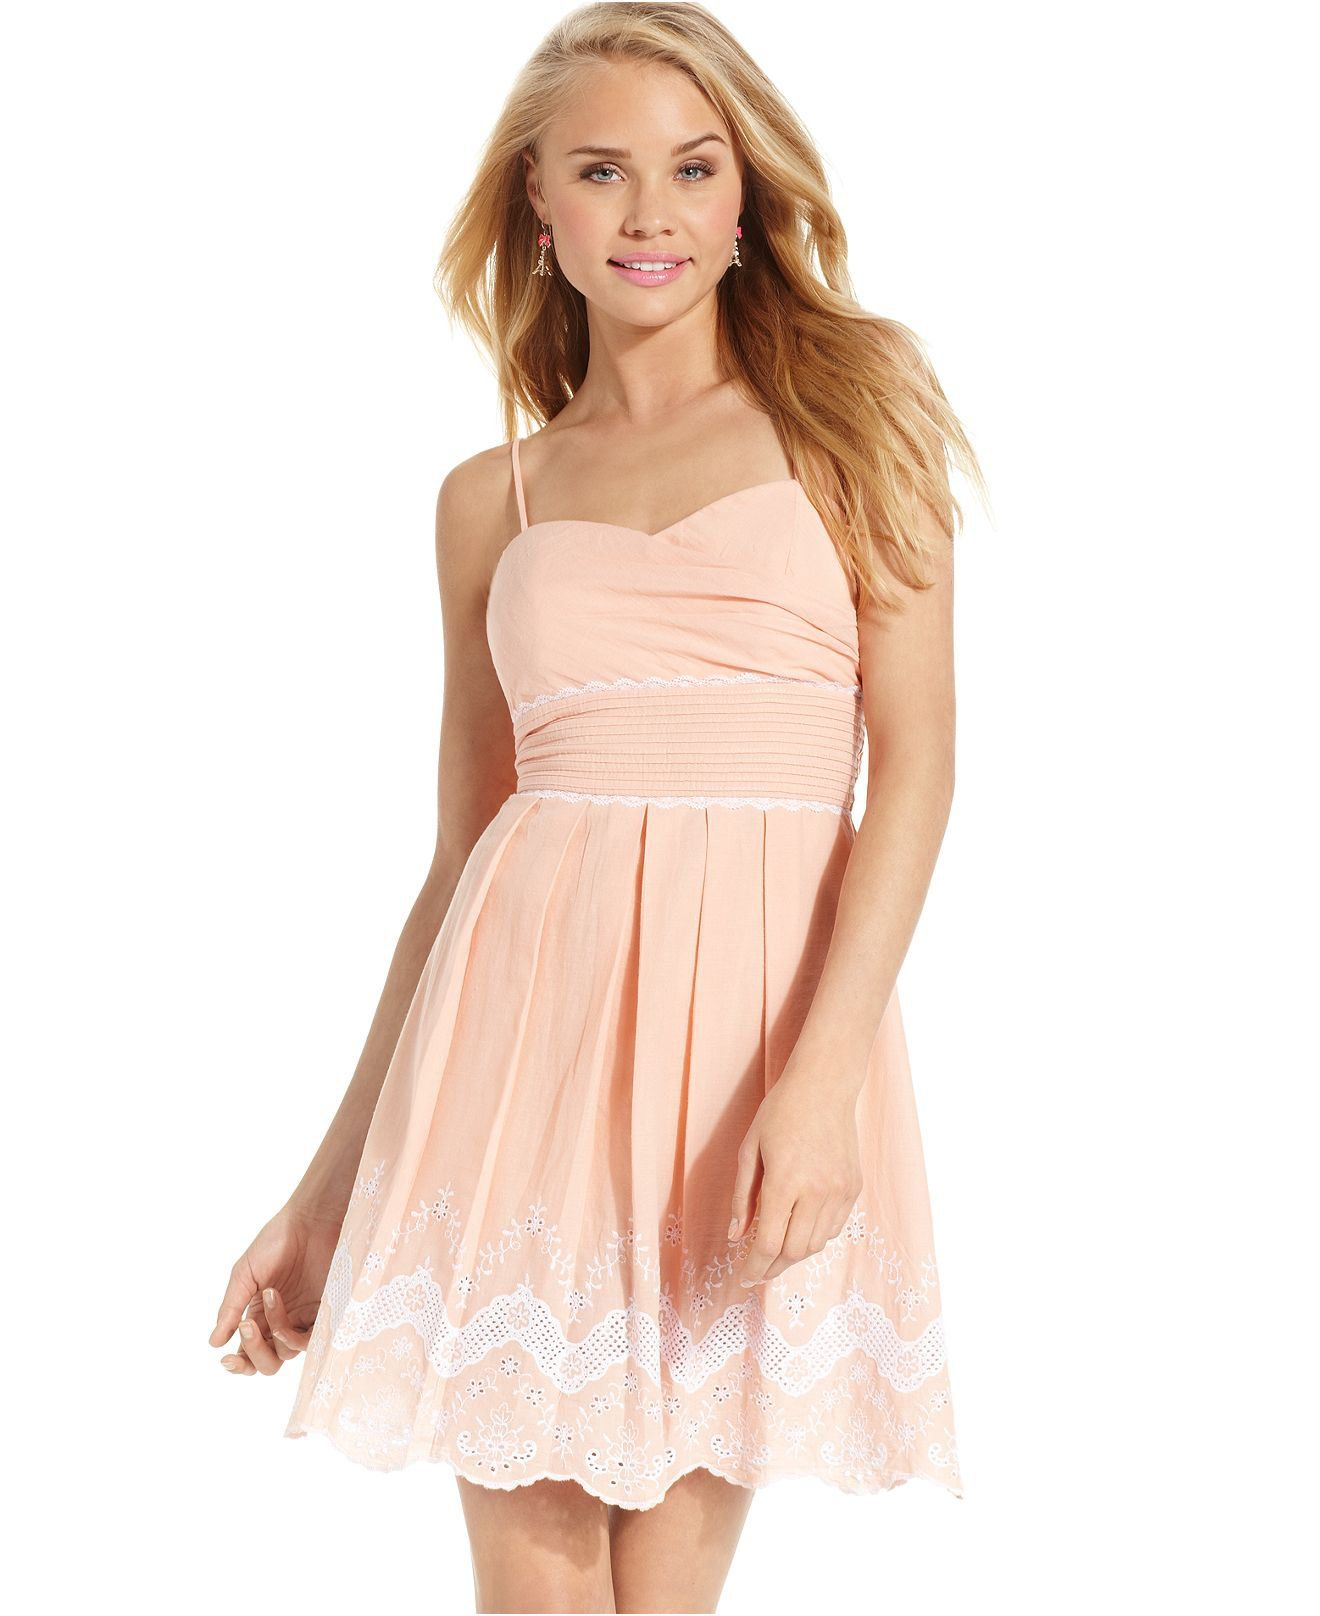 pretty dresses for teens - Google Search | Pretty Dresses | Pinterest